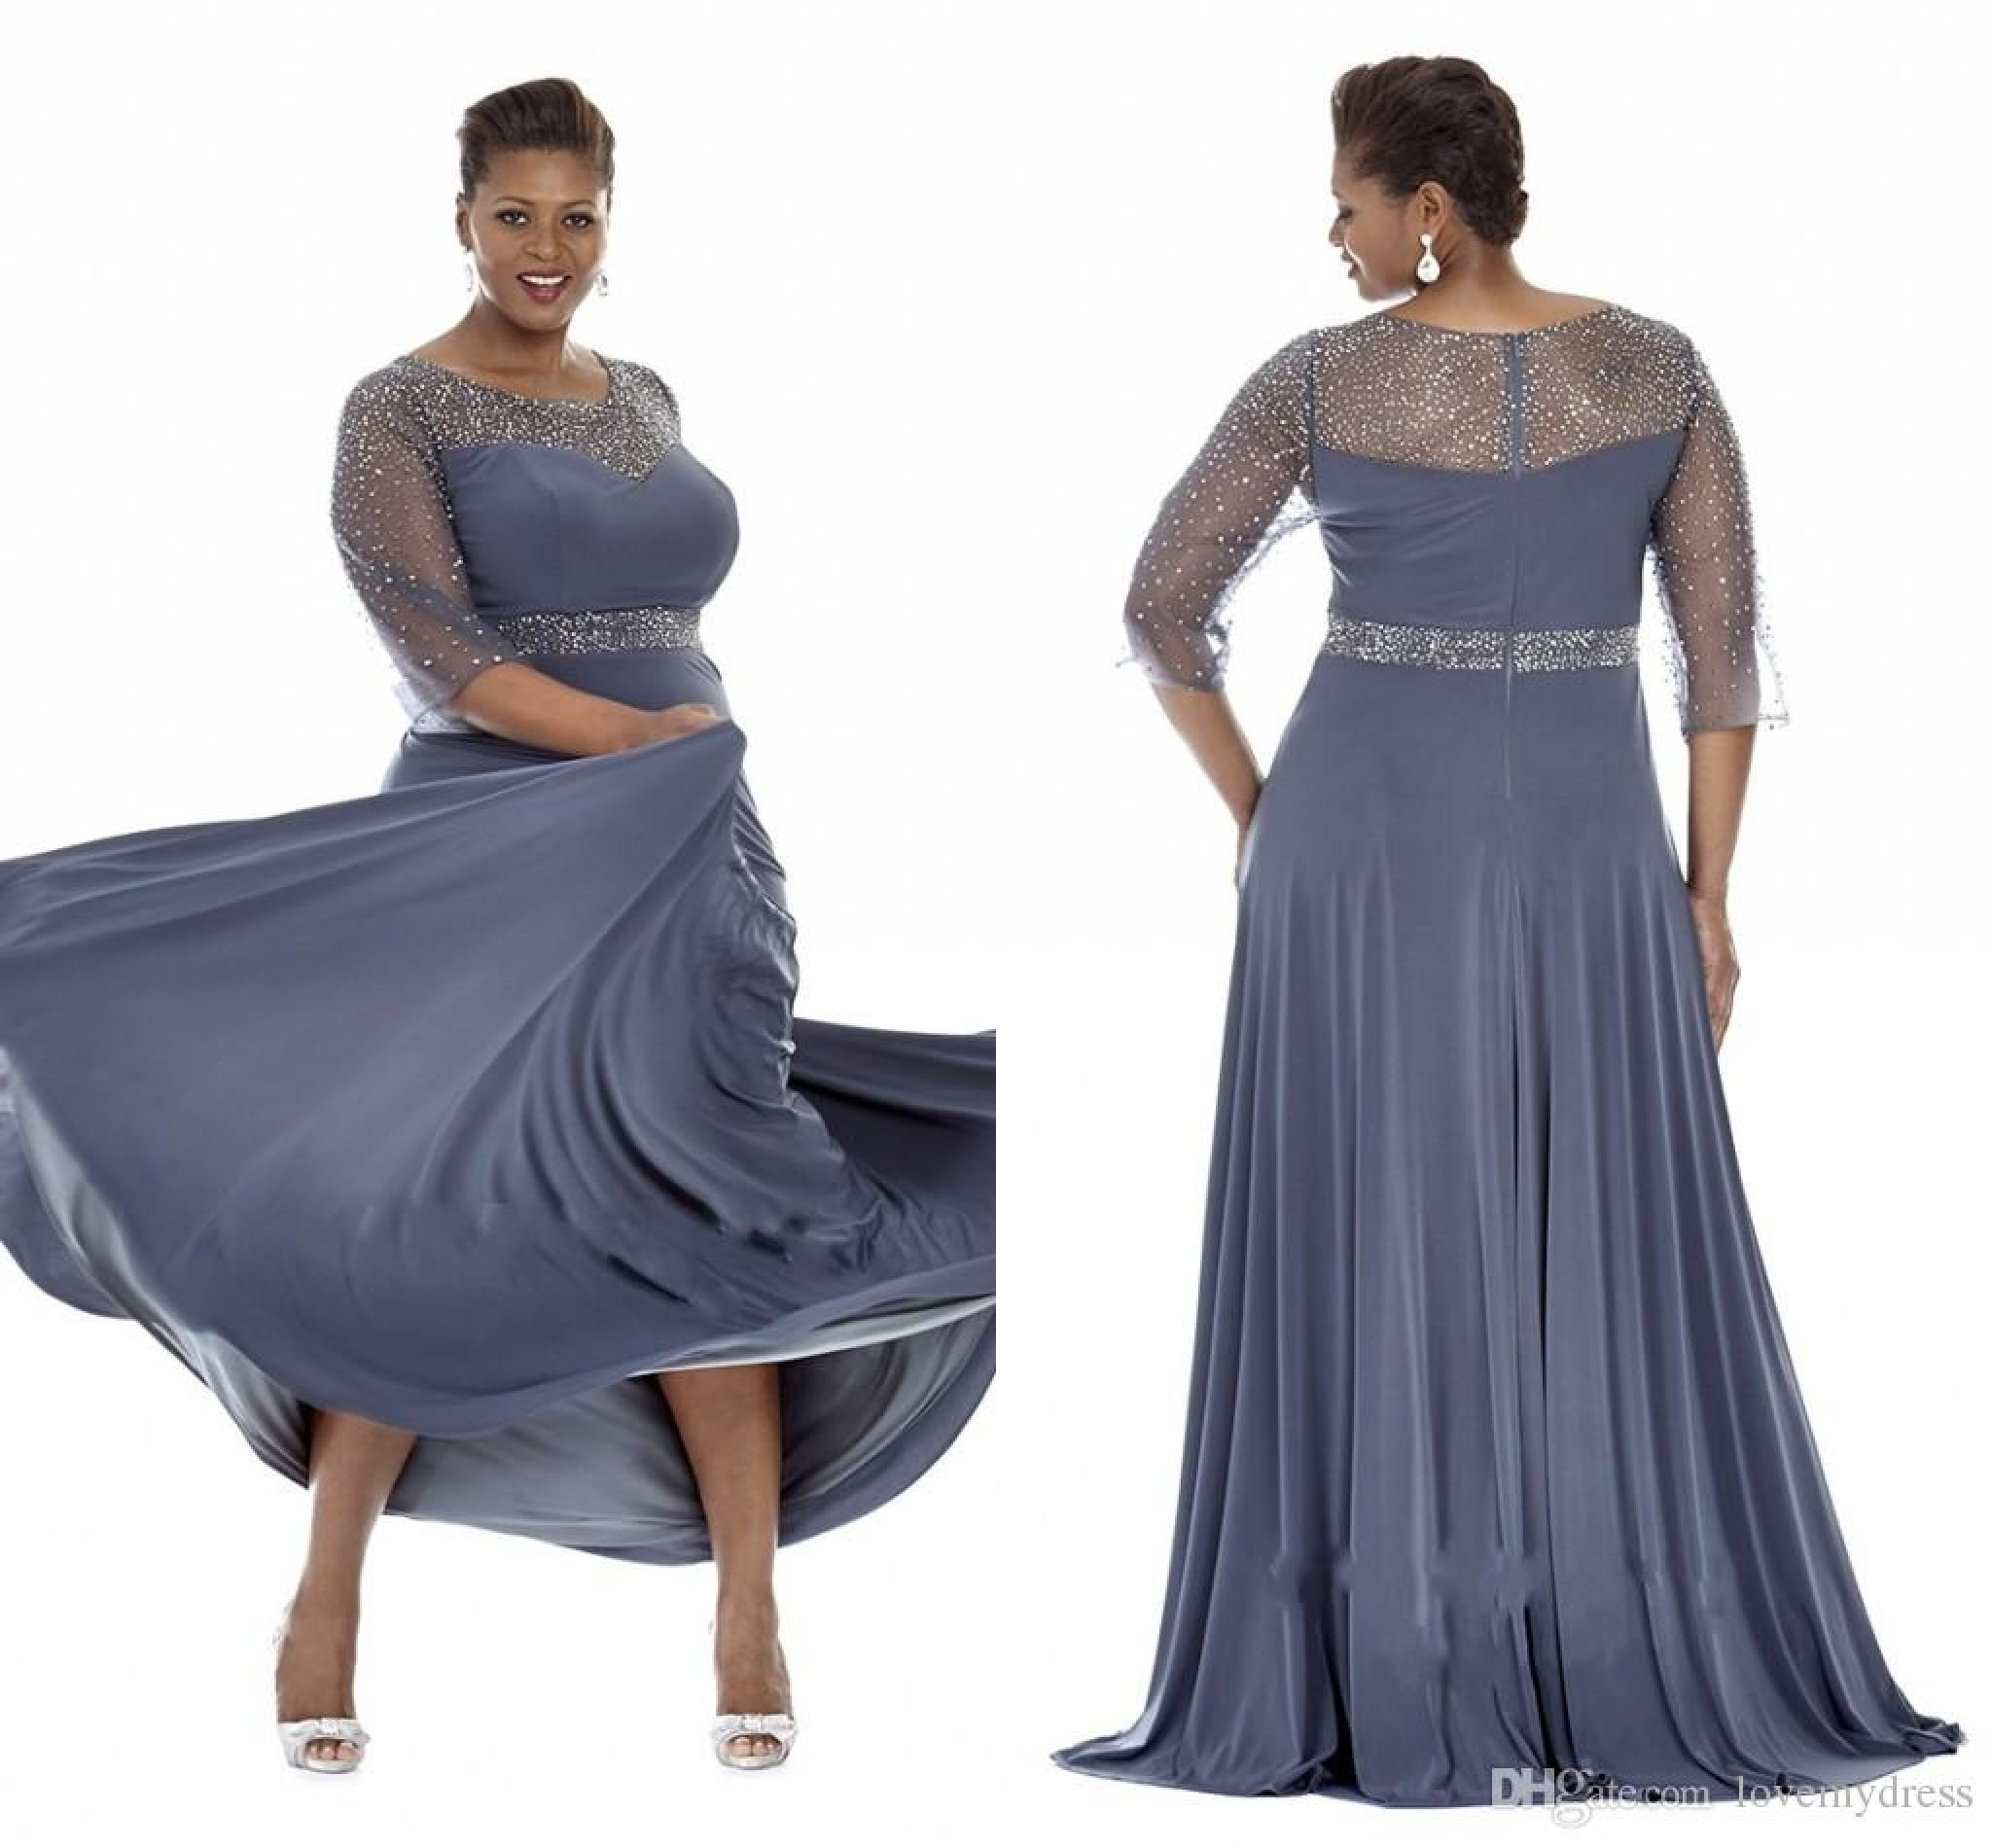 Plus Size Dresses To Wear A Wedding For Guests